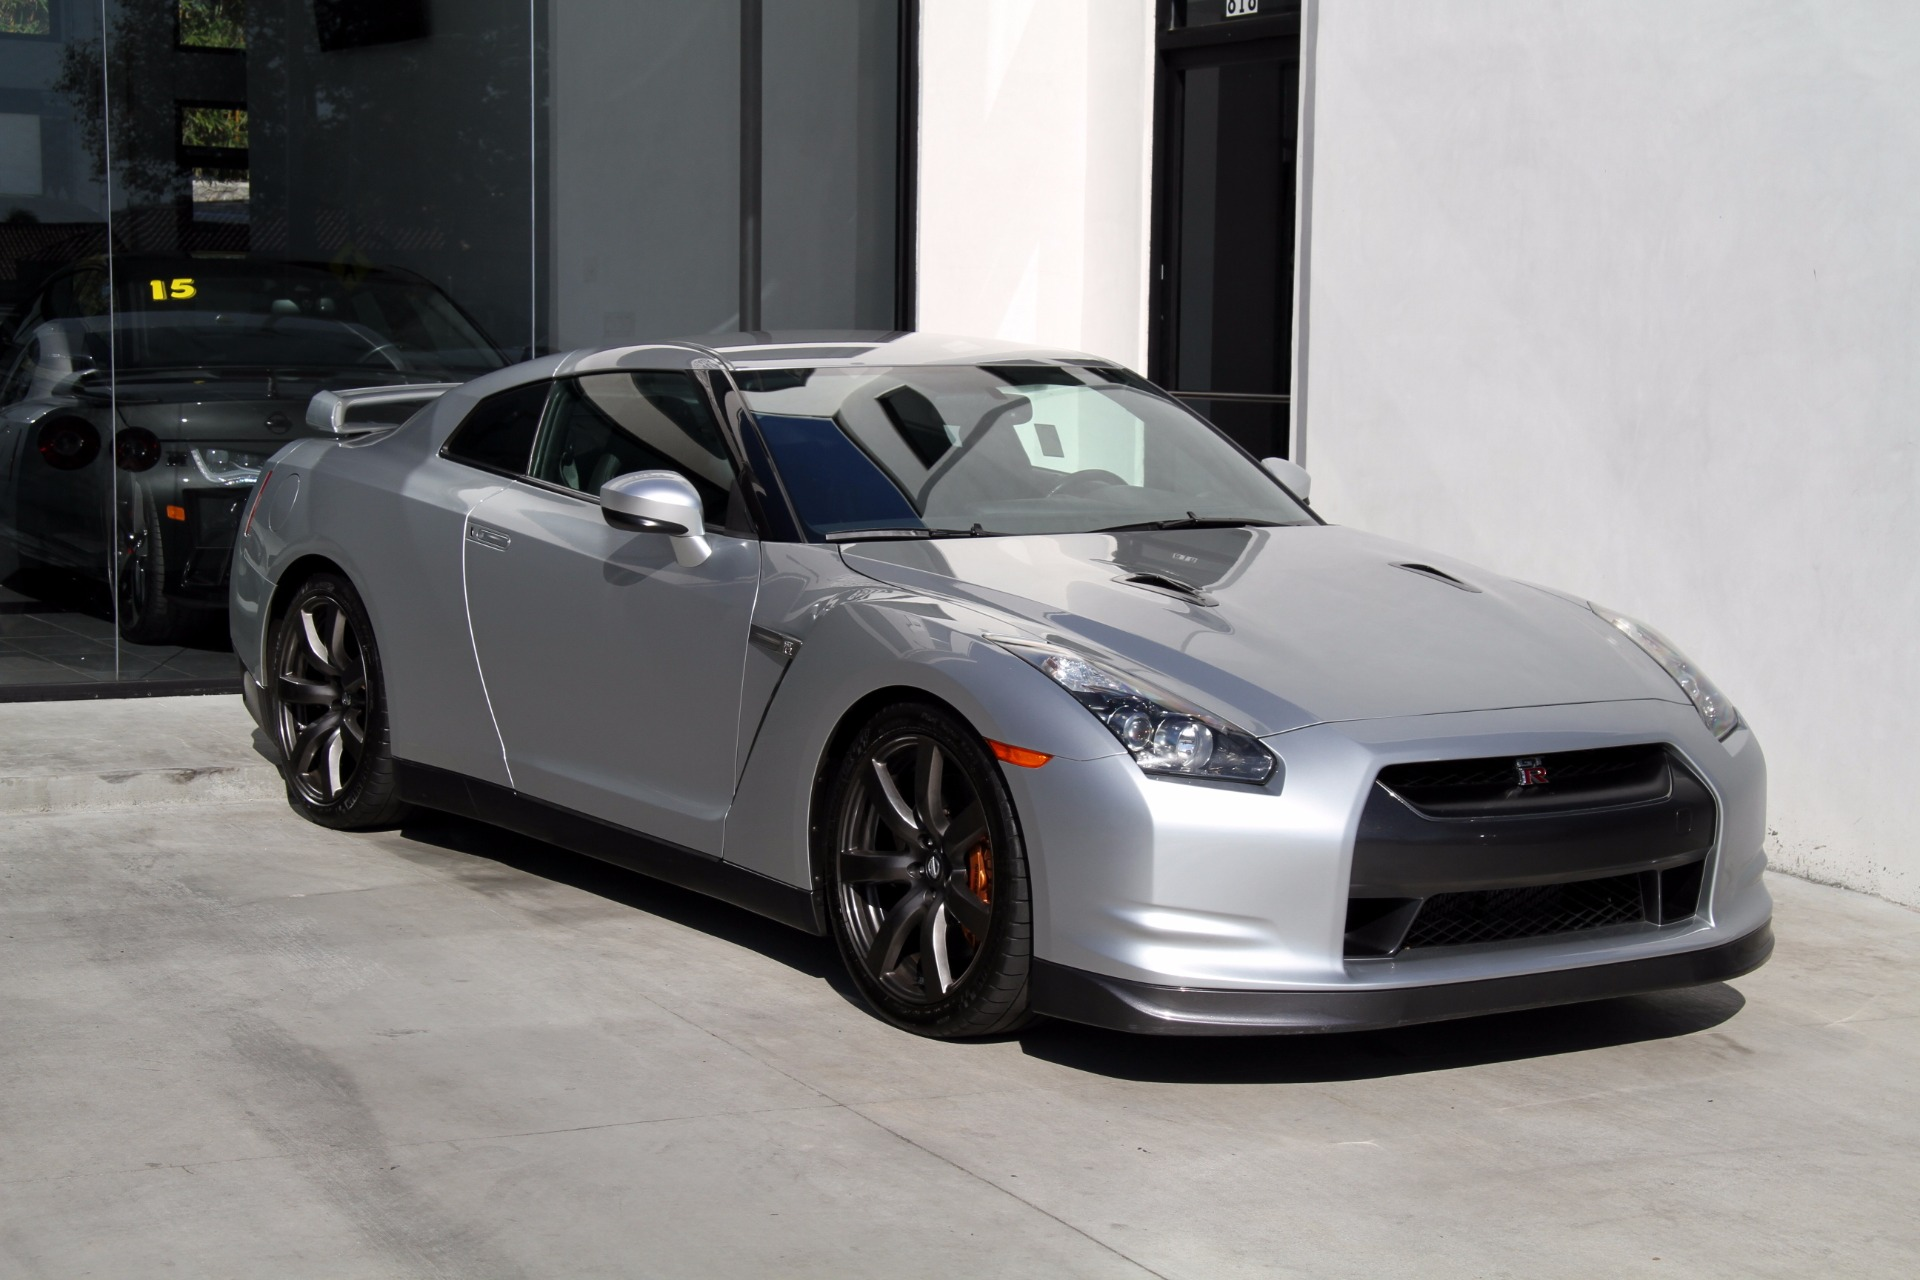 htm sale gt for r chicago premium used nissan l stock c near il gtr